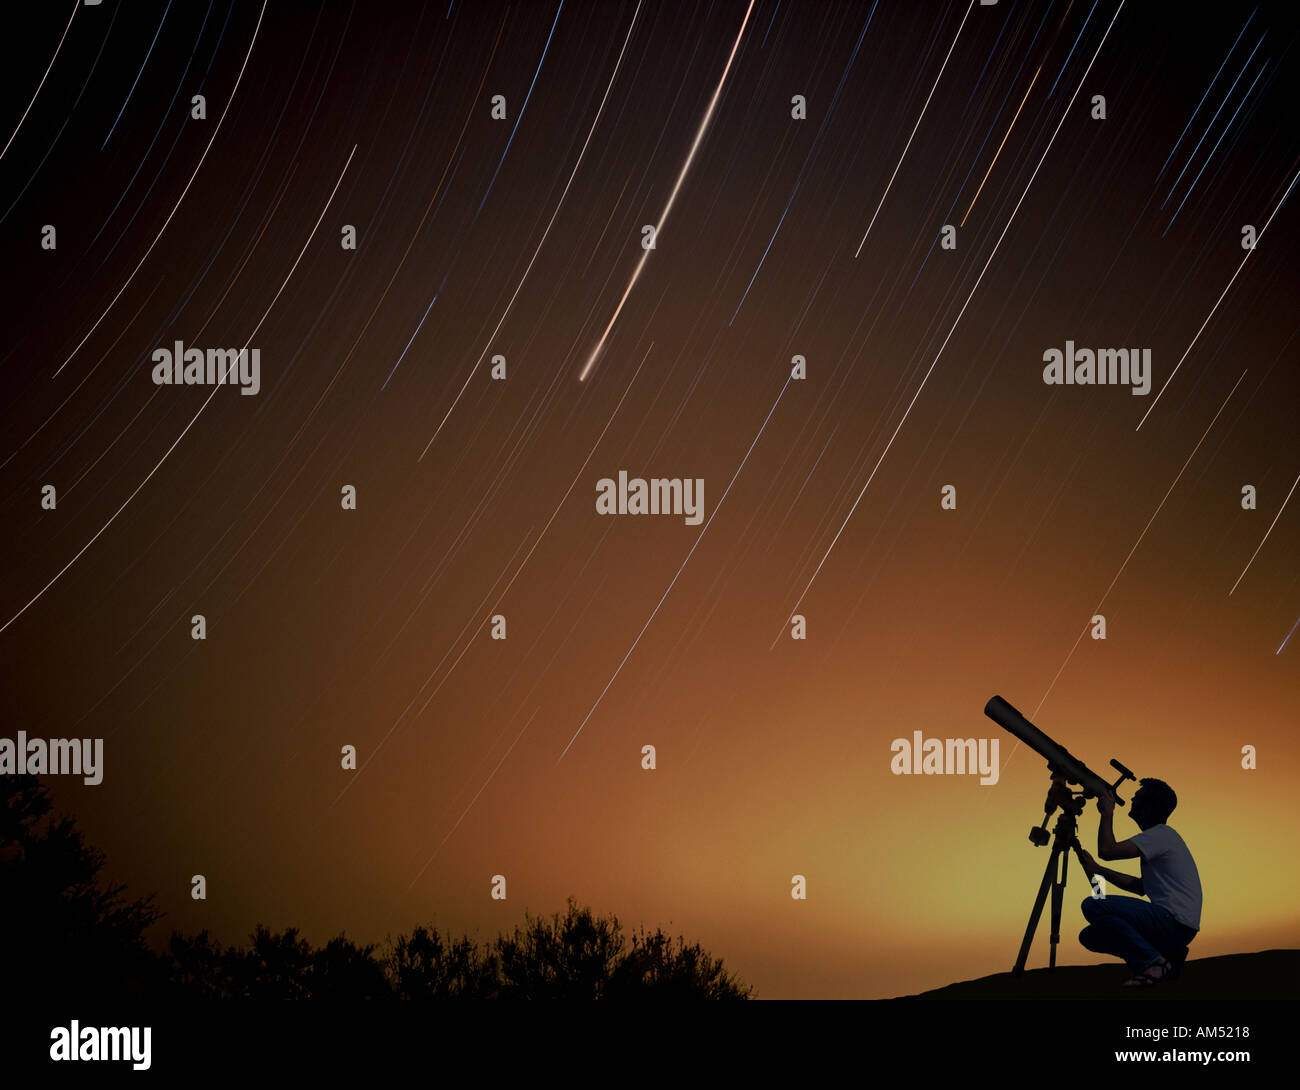 A man with a telescope looks at the night sky. Star trails in the night sky made during a long exposure. - Stock Image